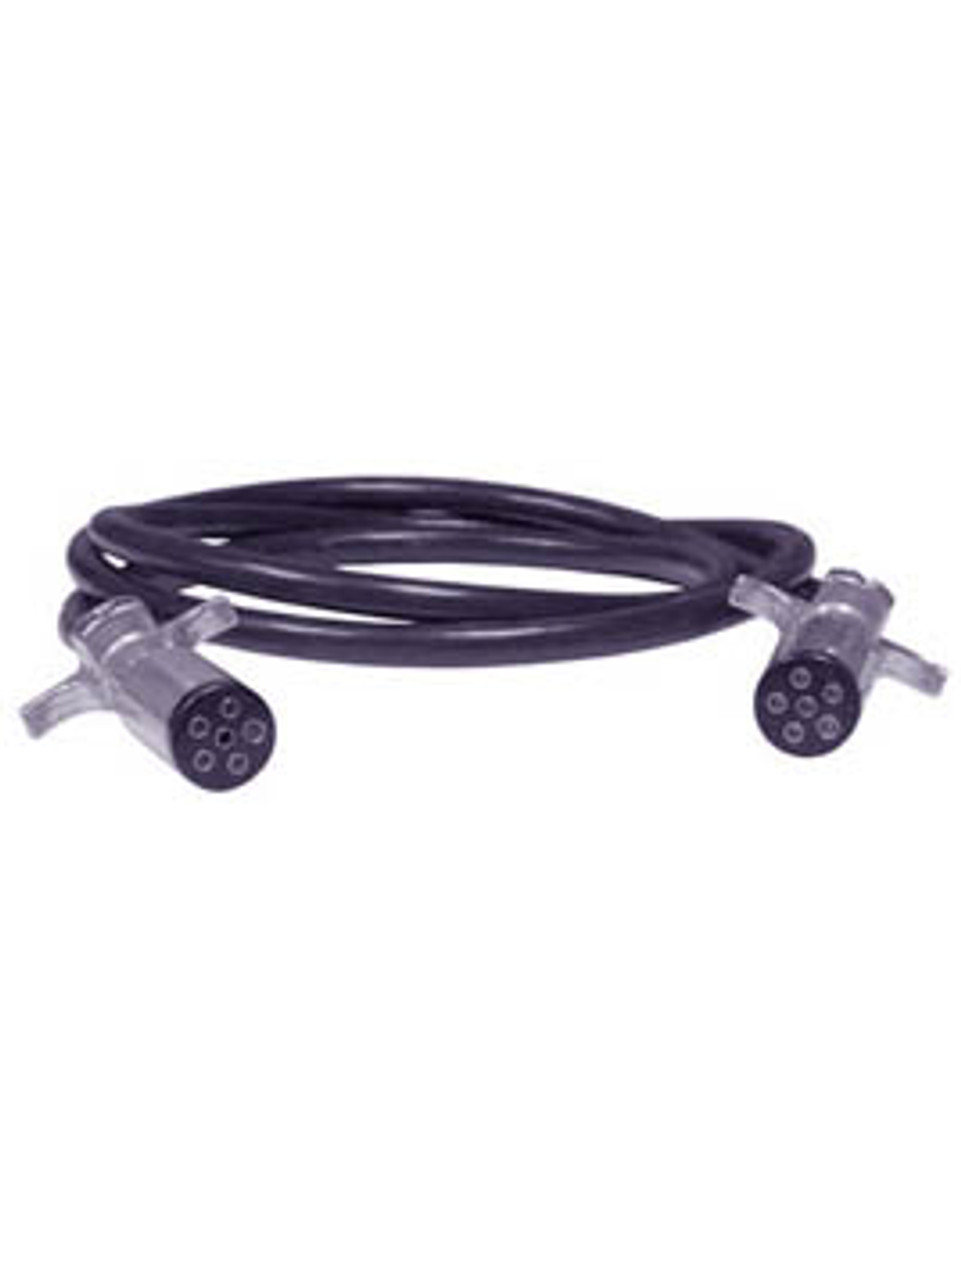 603PW/603P --- 6-Way 5' Straight Electrical Cable